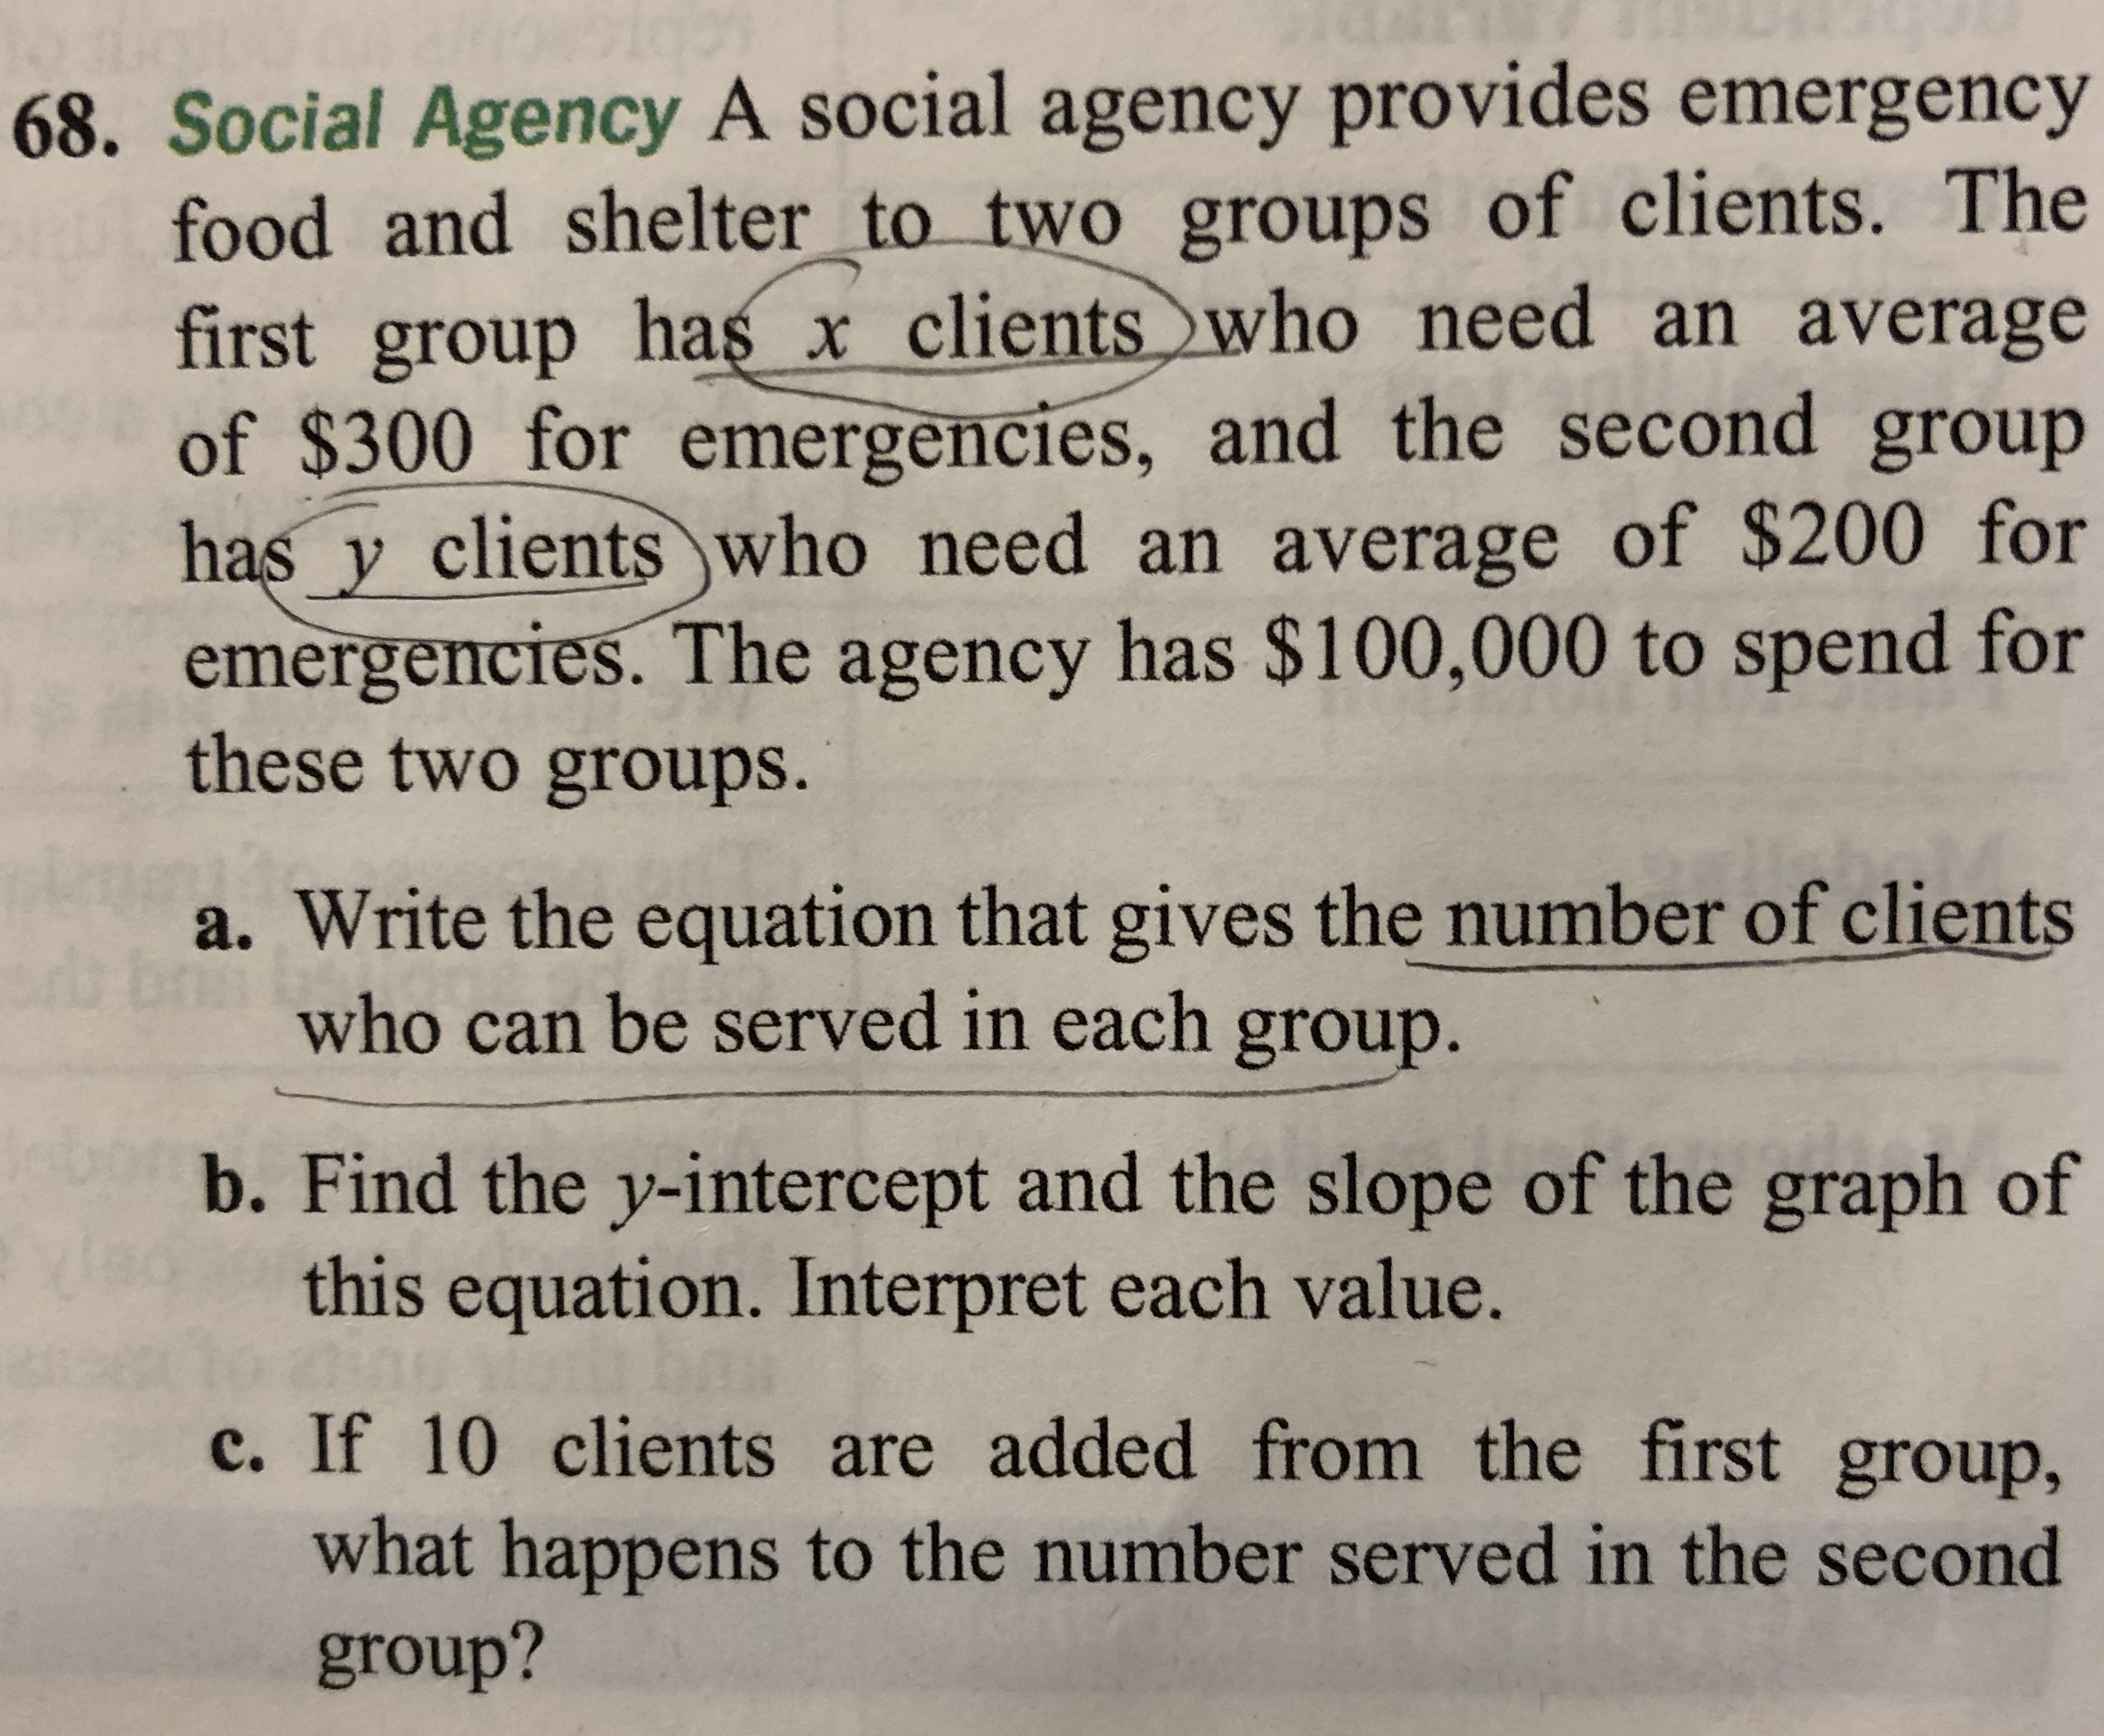 68. Social Agency A social agency provides emergency food and shelter_to two groups of clients. The first group has x clientswho need an average of $300 for emergencies, and the second group has y clients who need an average of $200 for emergencies. The agency has $100,000 to spend for these two groups. a. Write the equation that gives the number of clients who can be served in each group. b. Find the y-intercept and the slope of the graph of this equation. Interpret each value. c. If 10 clients are added from the first group, what happens to the number served in the second group?